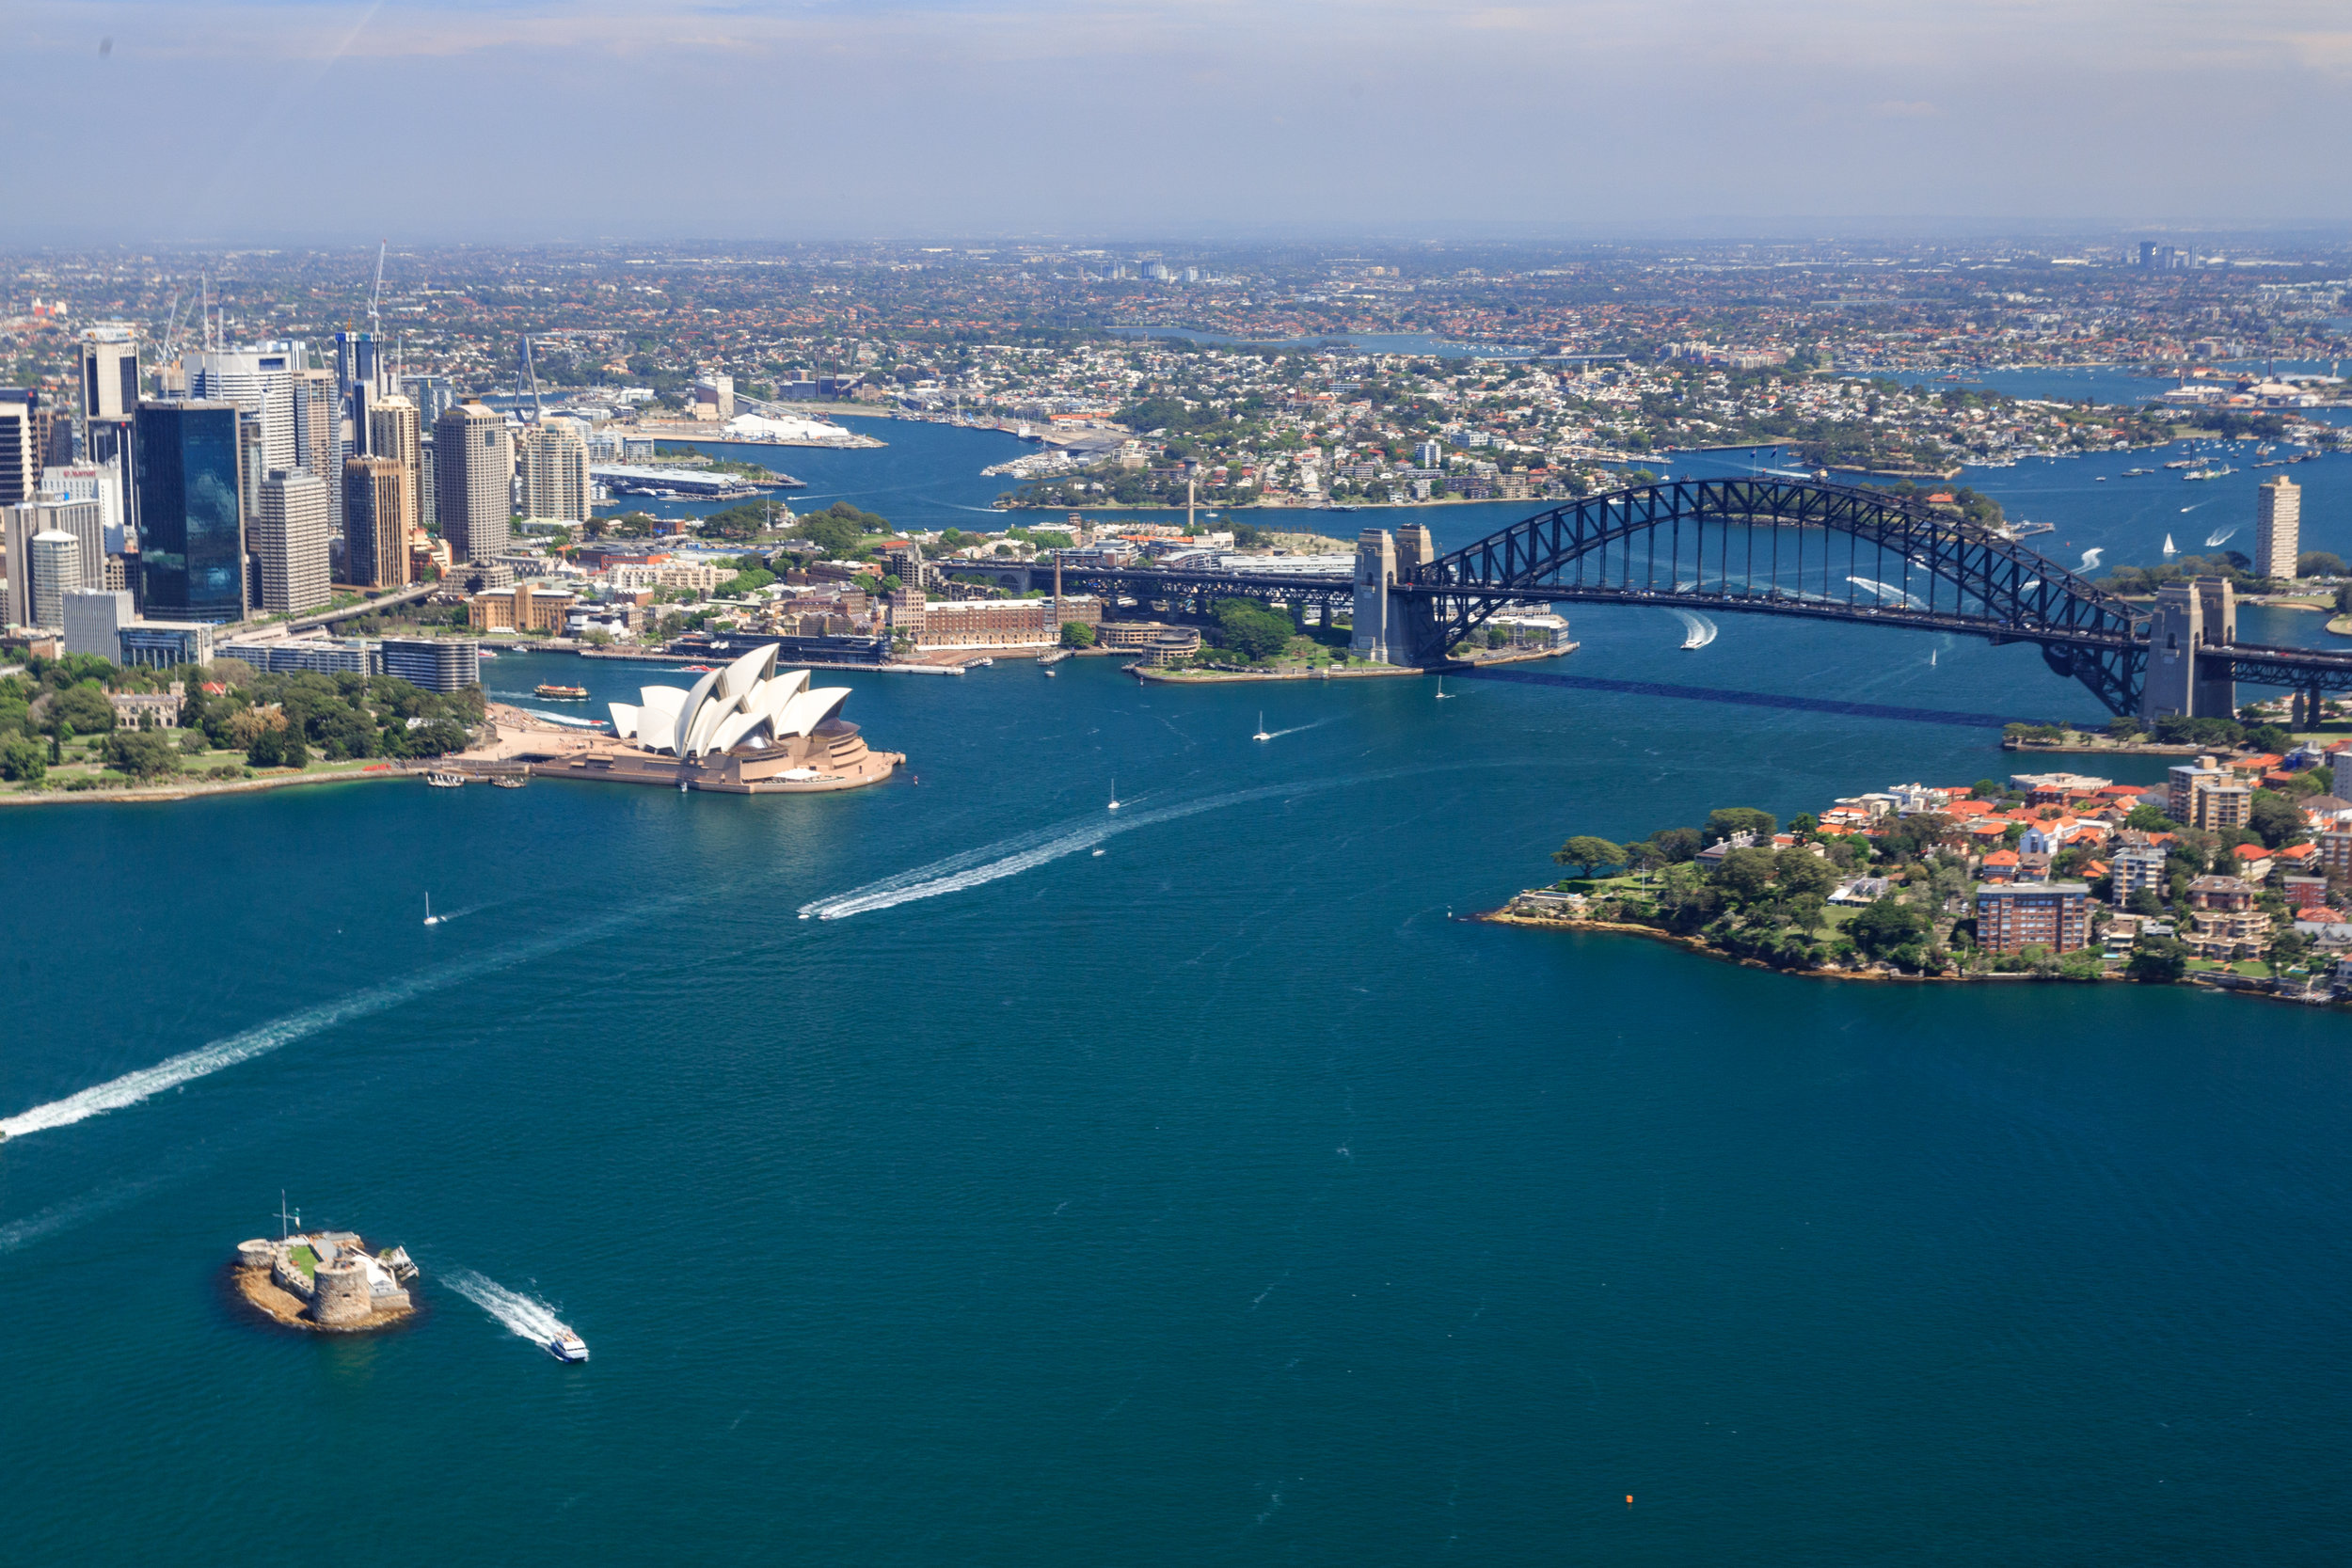 Best views of the Sydney Harbour Bridge: from a helicopter